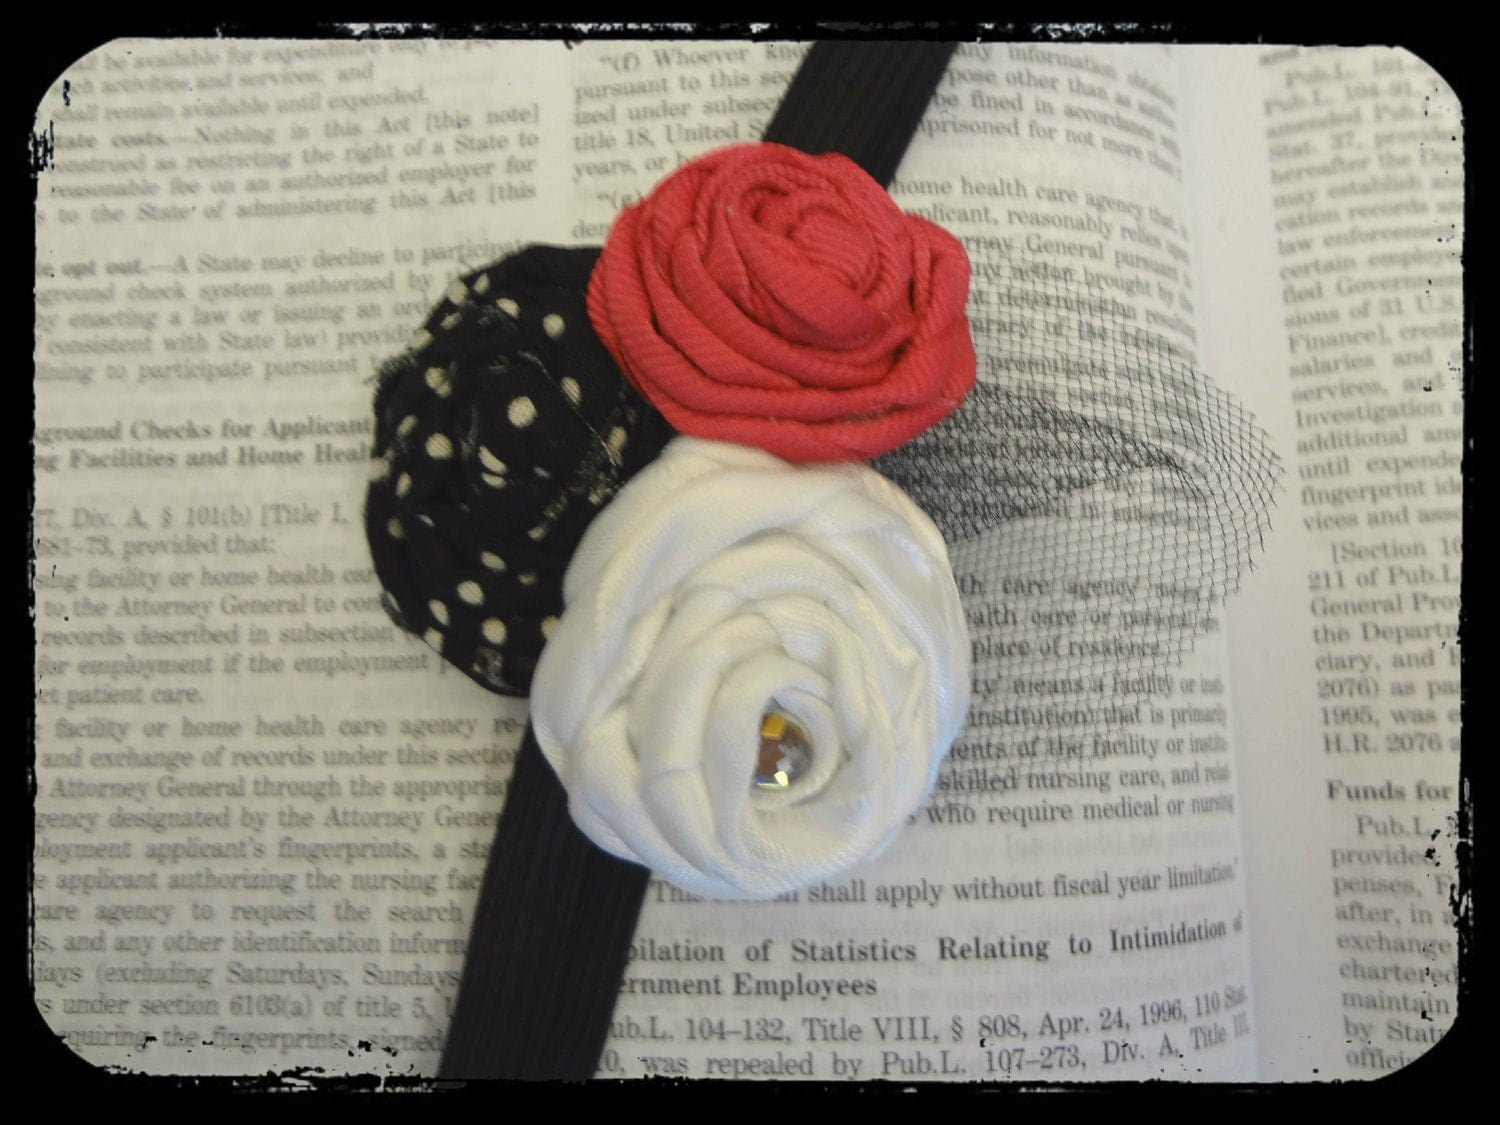 Childrens Headband - Fabric and Ribbon Rosettes - Clear Jewel - Fuschia, White, Black and White Polka Dot on Black Elastic Headband